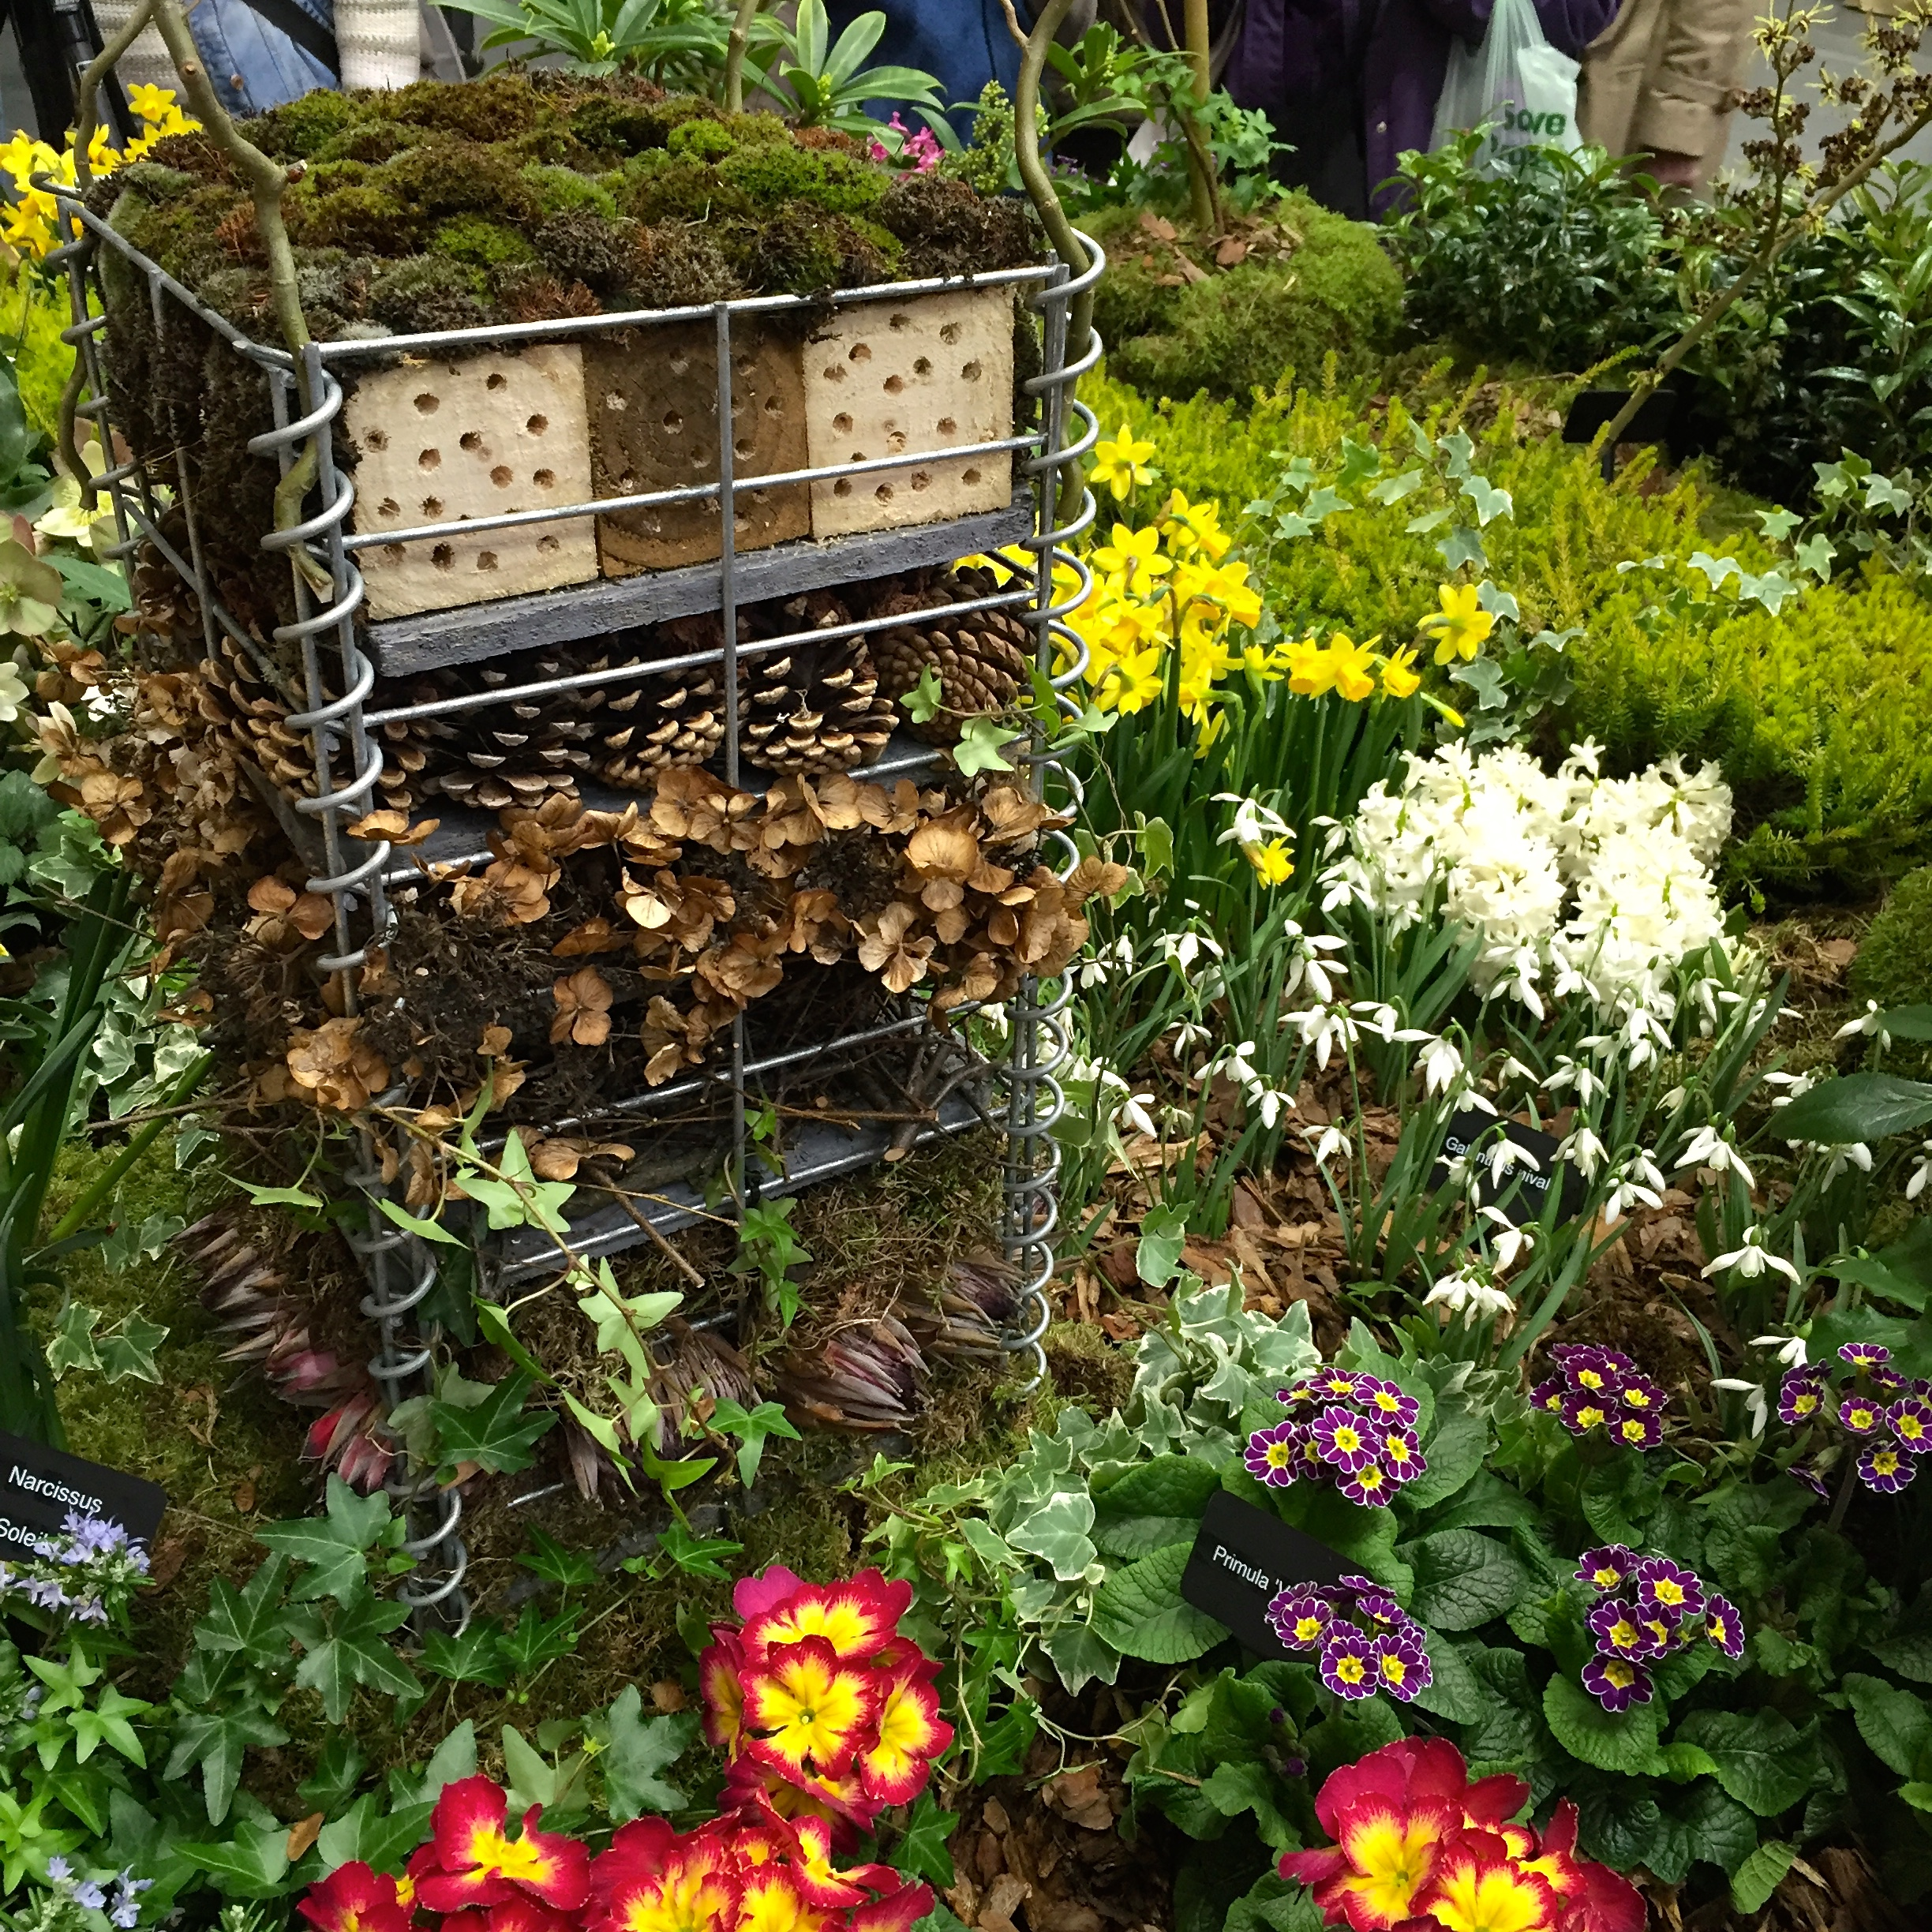 rhs london early spring plant fair 2016 – the frustrated gardener